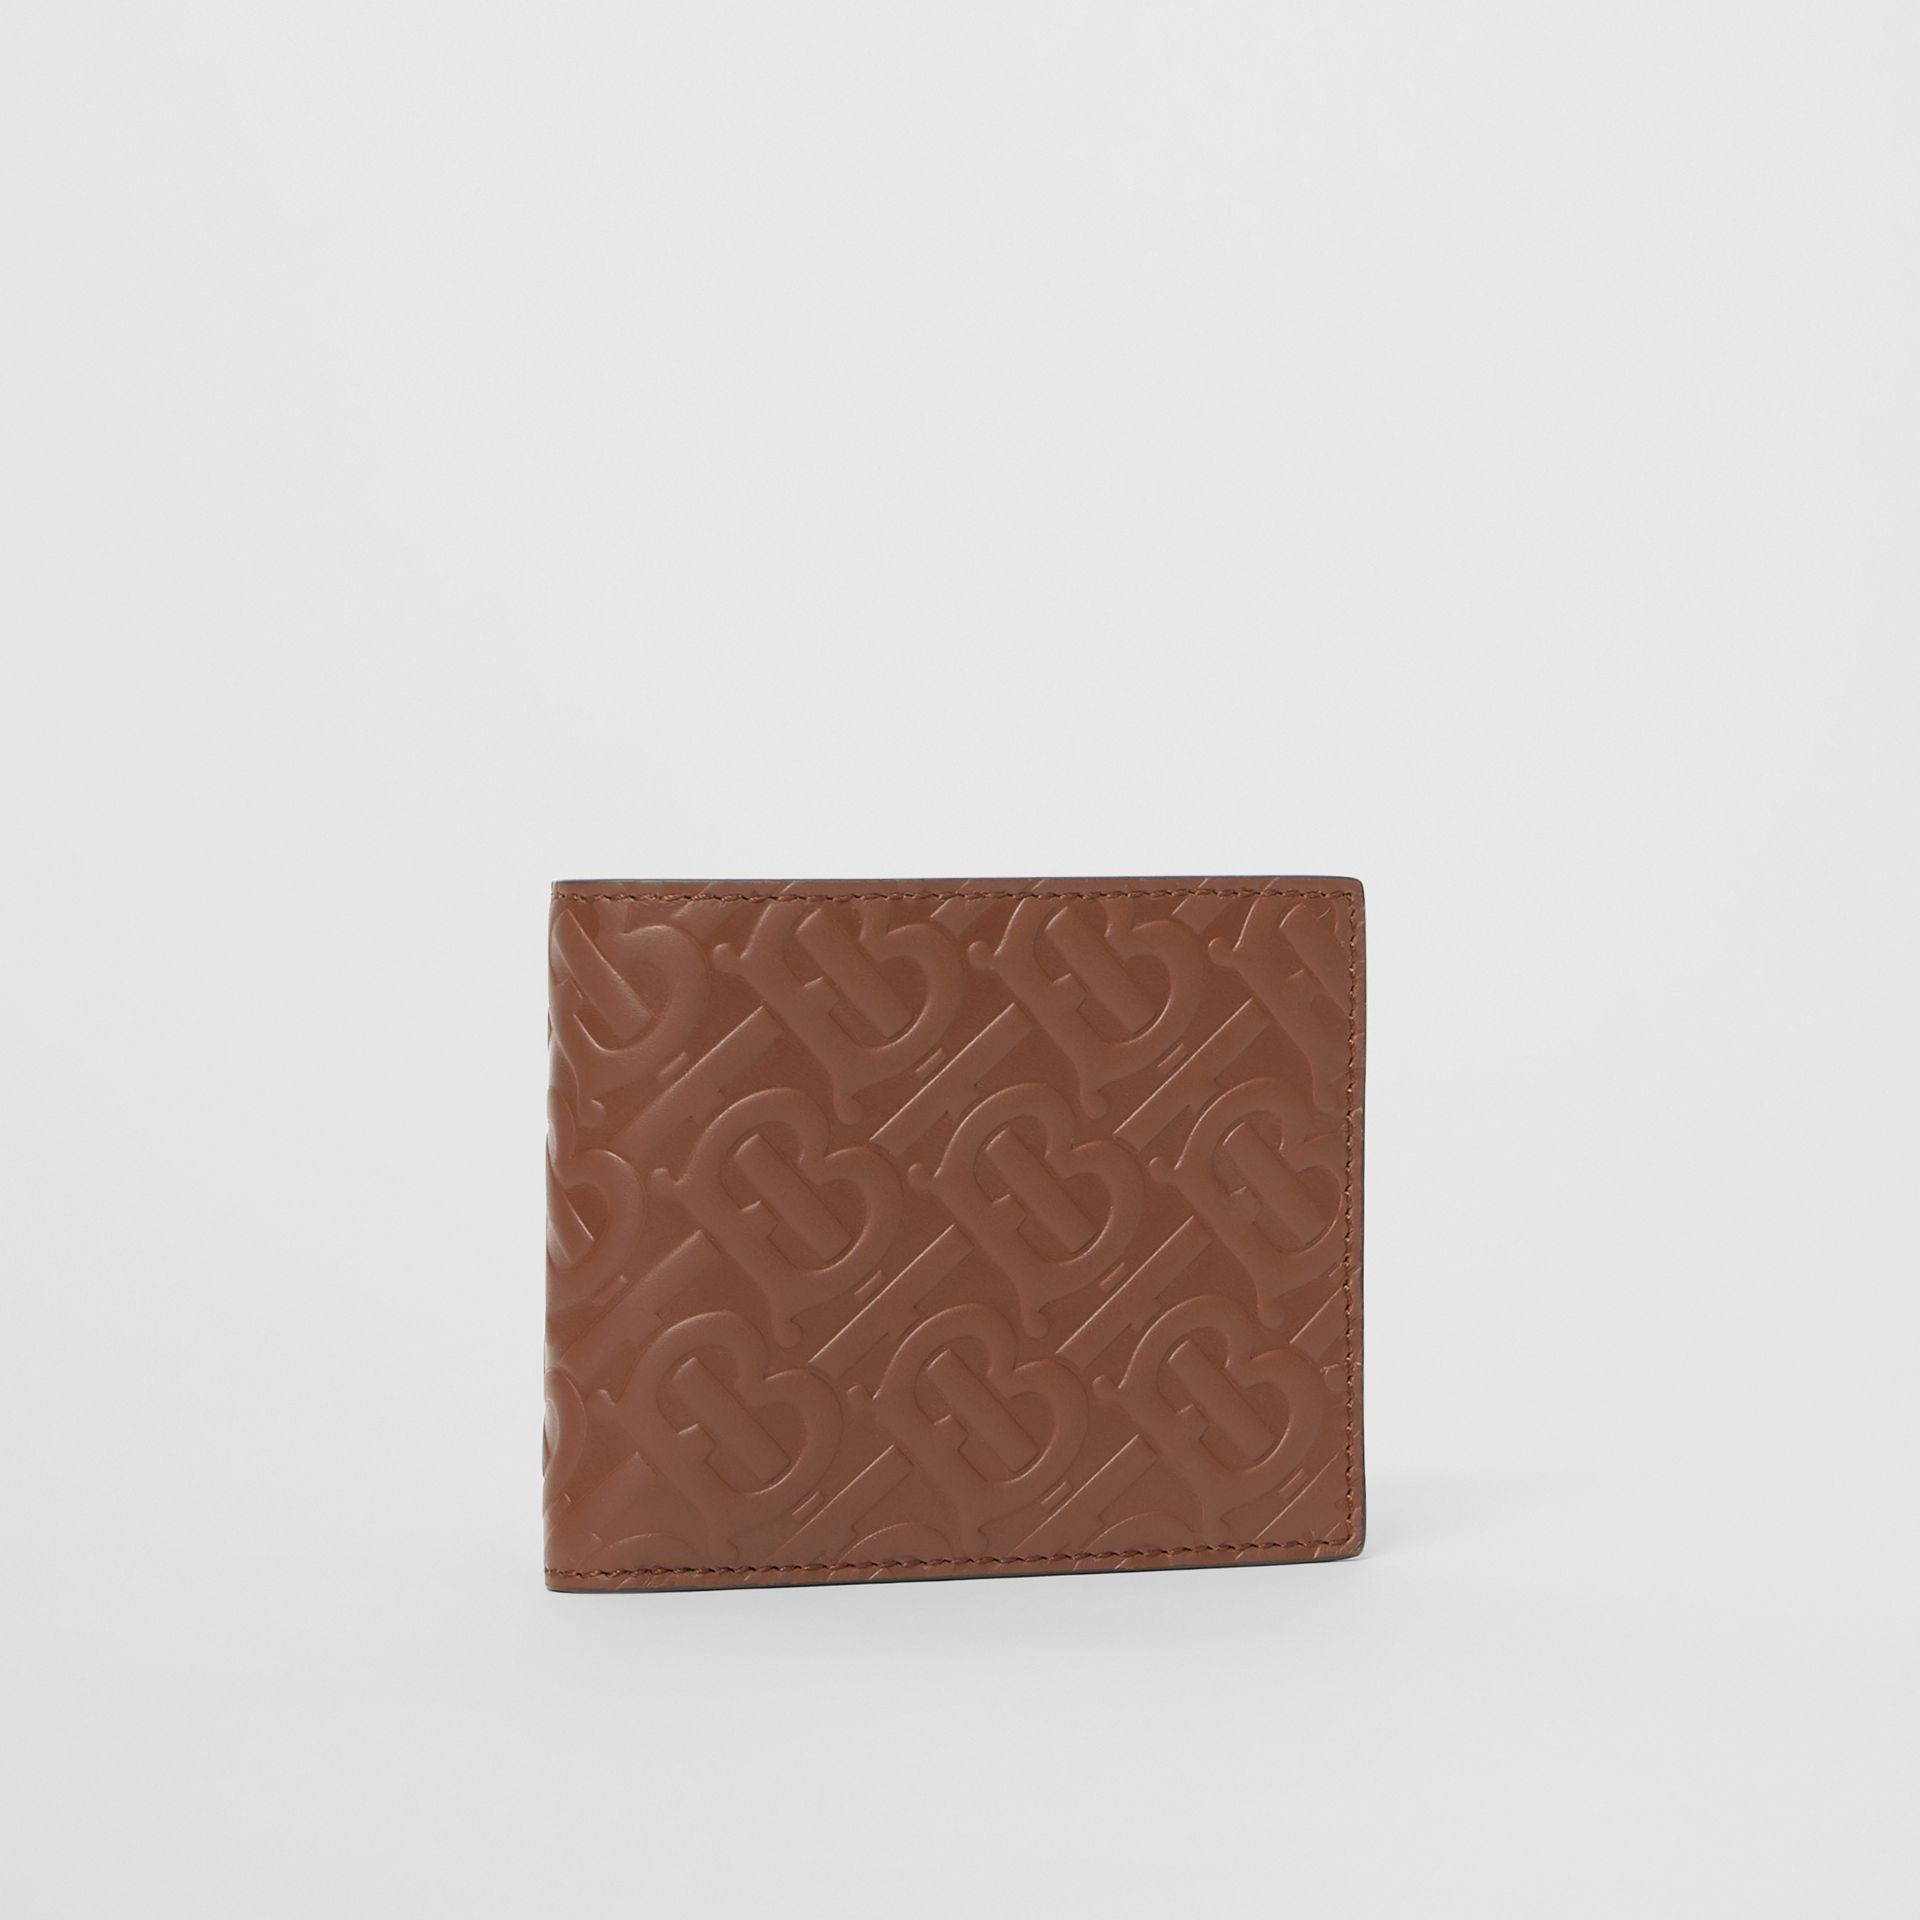 Monogram Leather International Bifold Wallet in Dark Tan - Men | Burberry Australia - gallery image 3